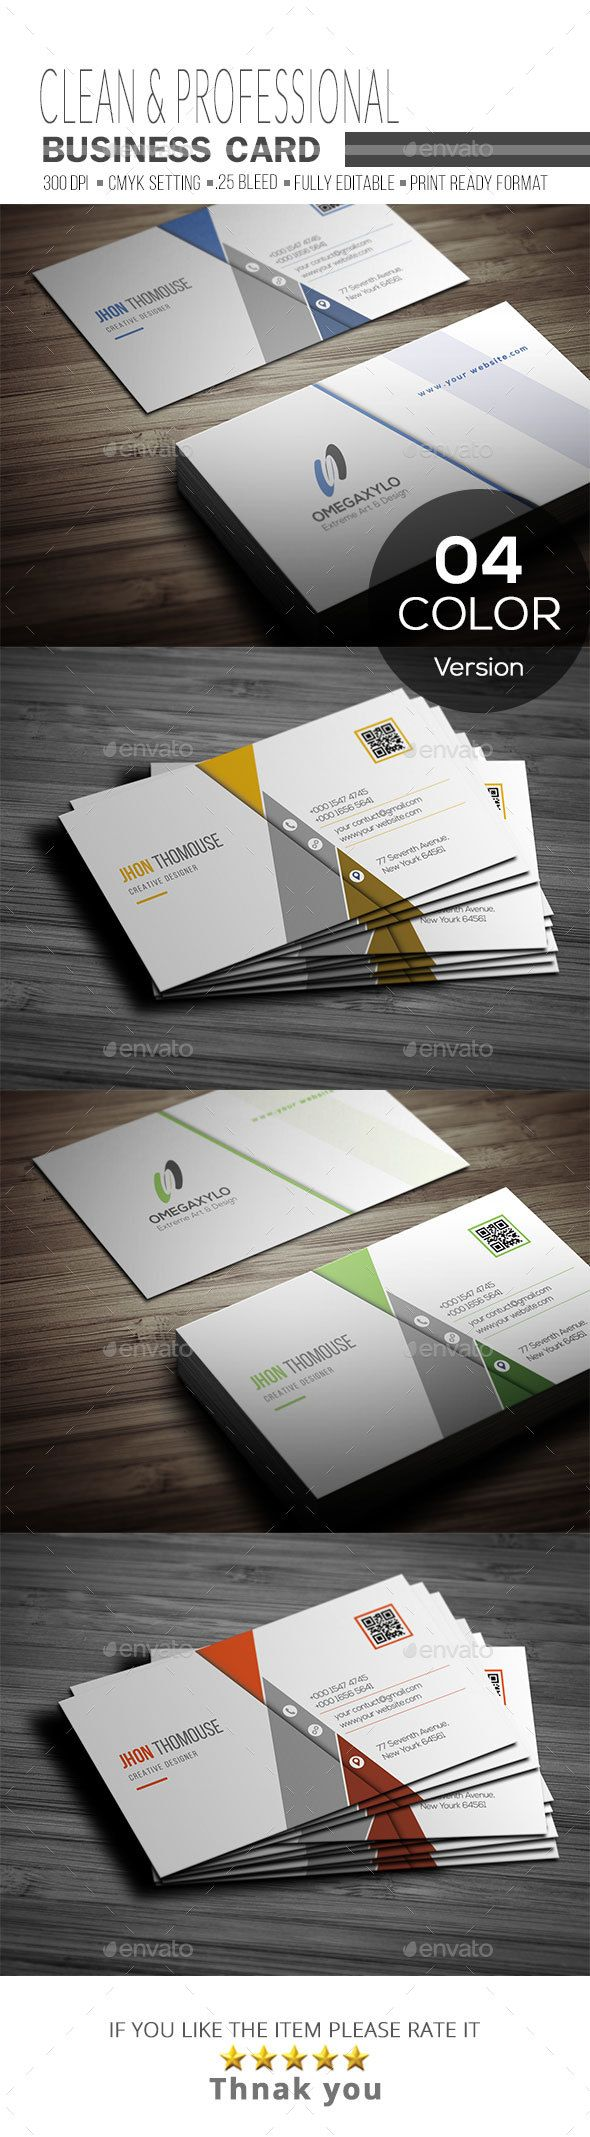 63 best membership cards images on pinterest vip card member card business card colourmoves